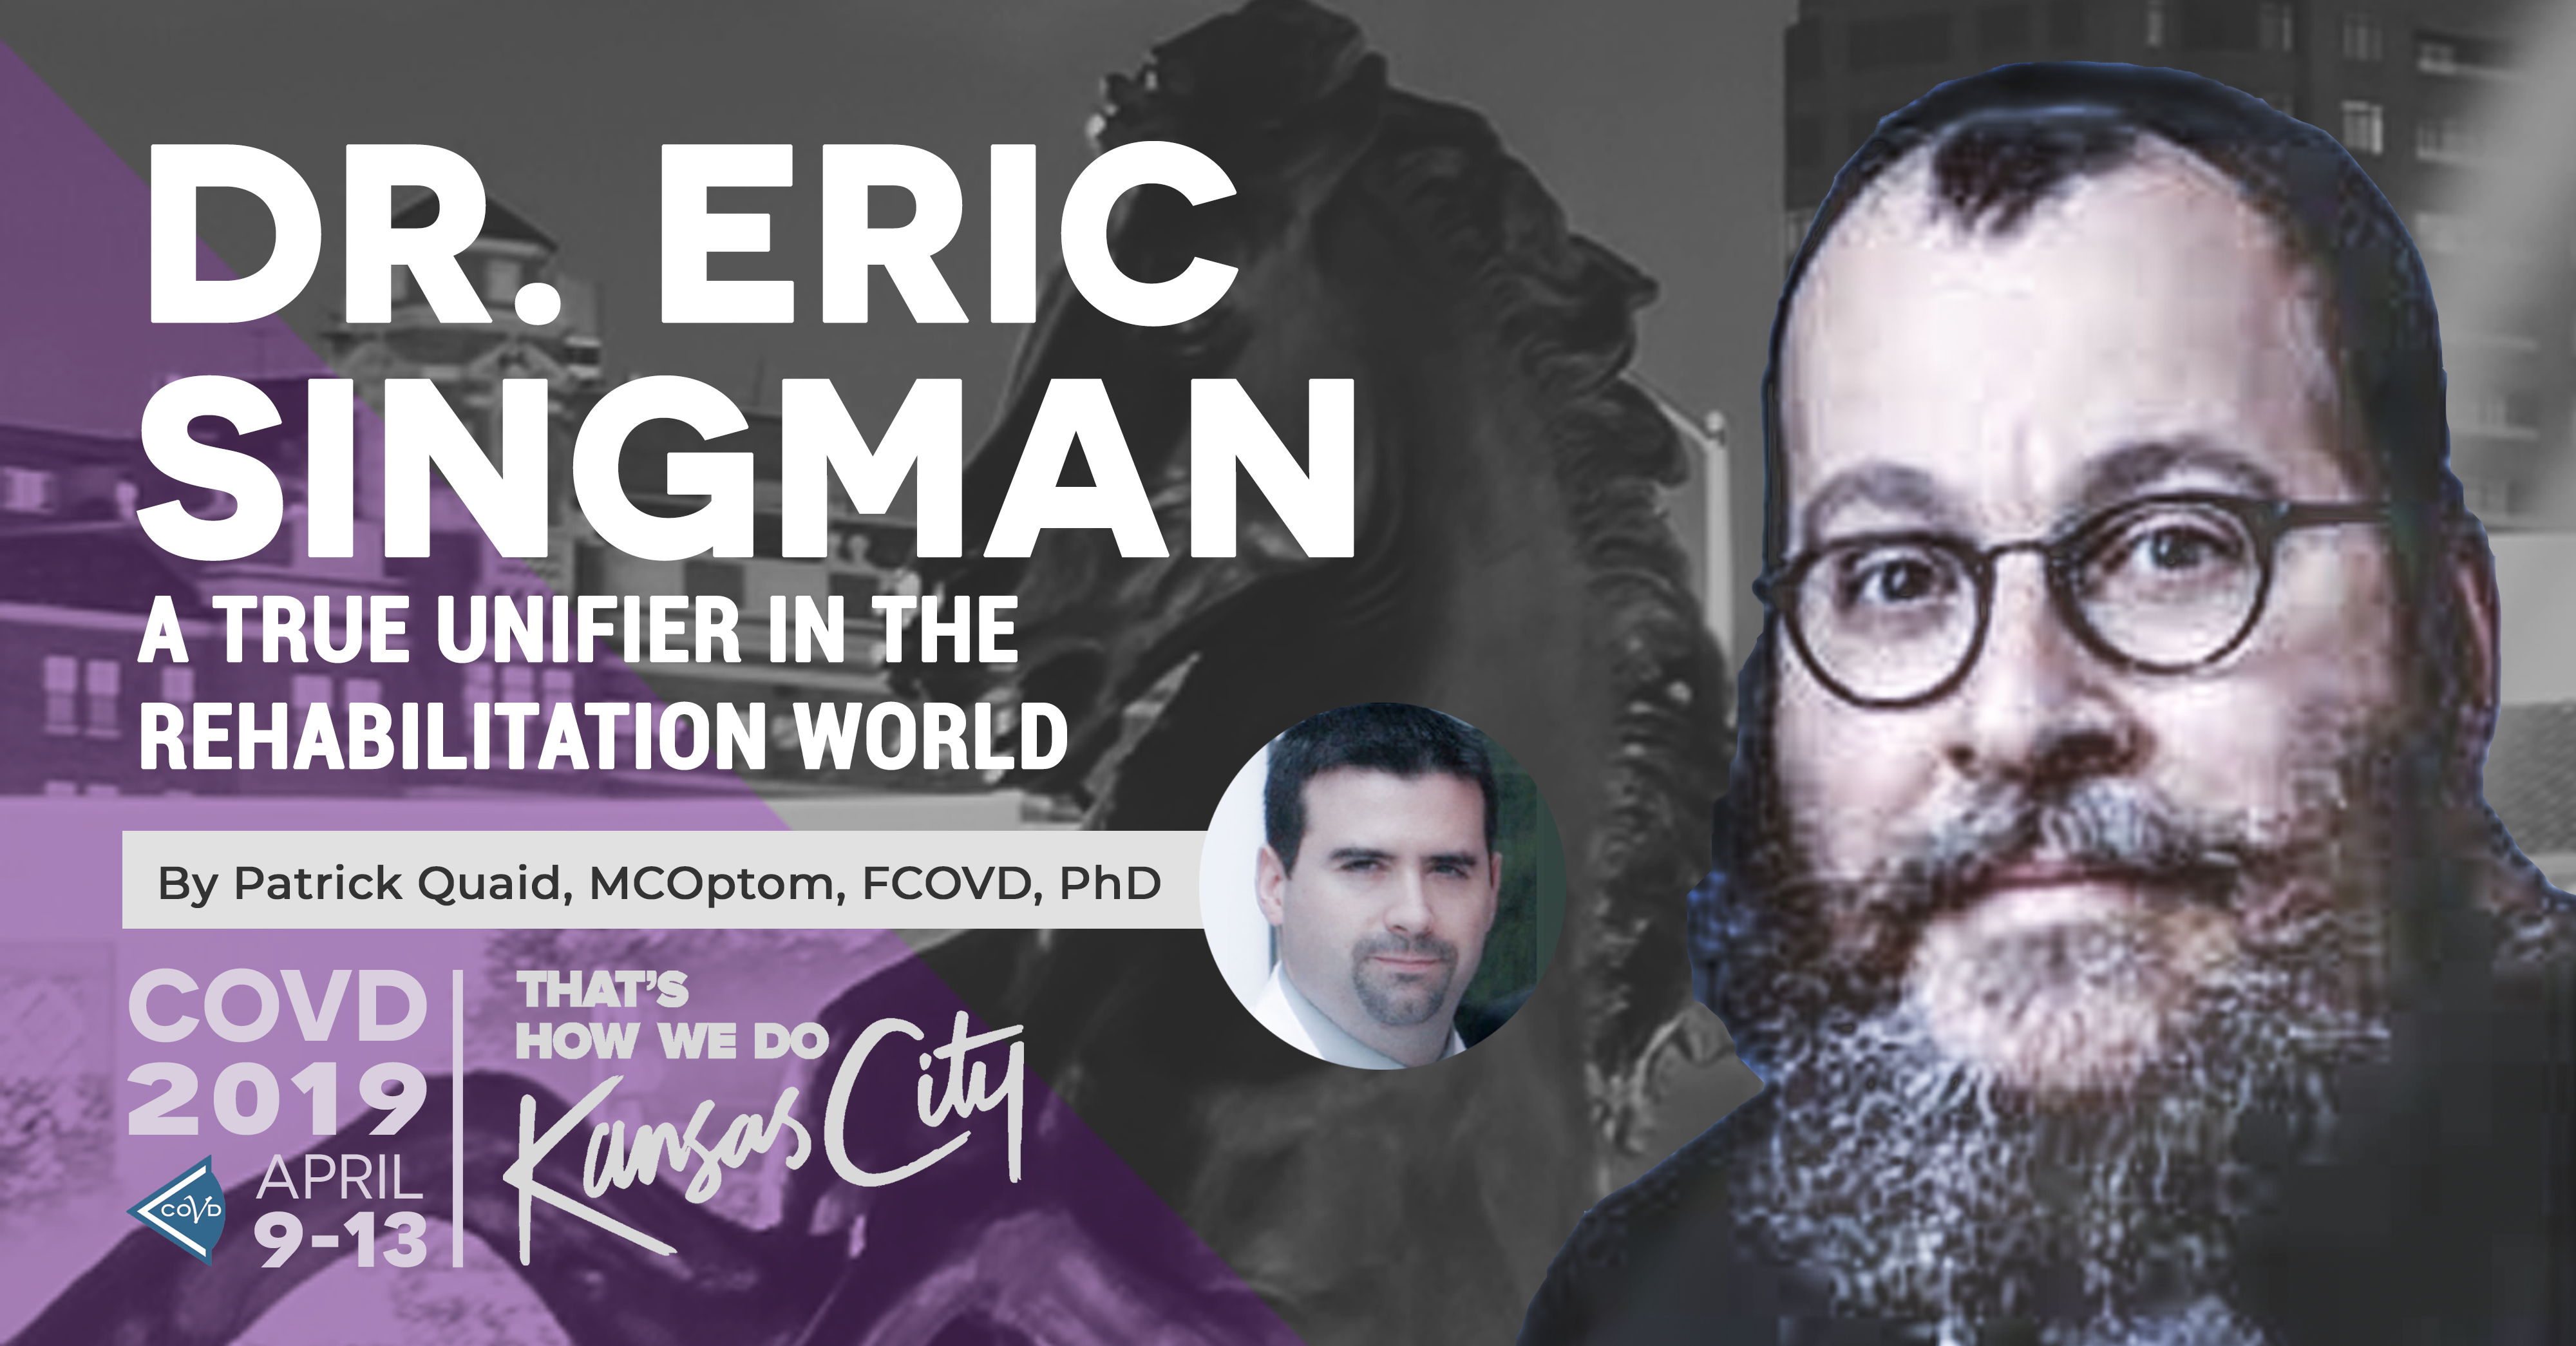 Read Dr. Patrick Quaid's introduction of Dr. Eric Singman on COVD's blog!